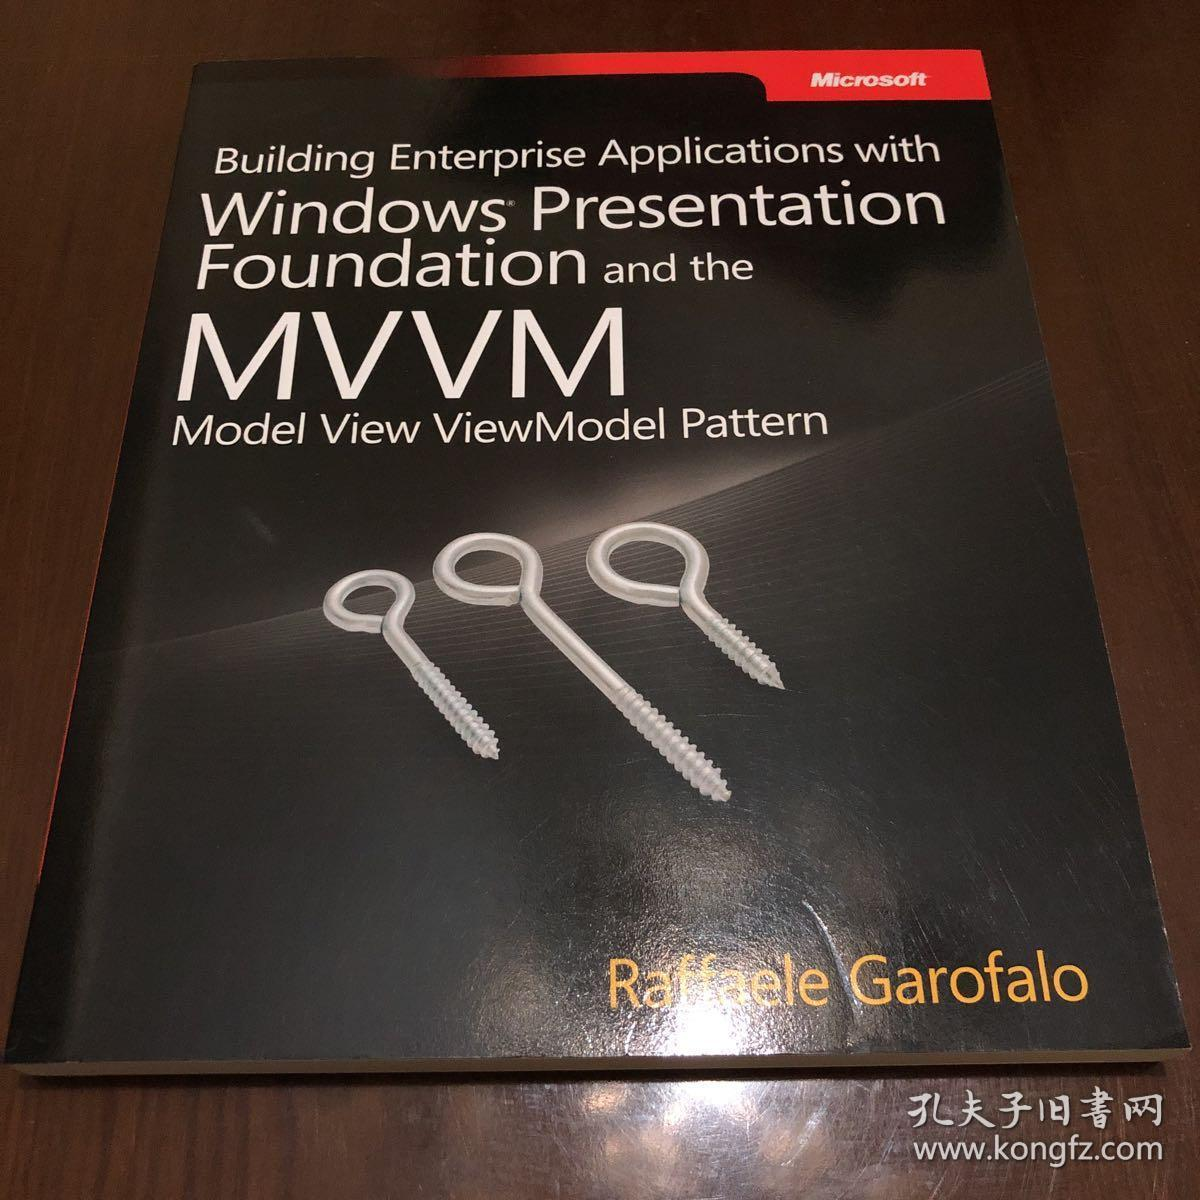 Building enterprise application with Windows Presentation Foundation and the MVVM